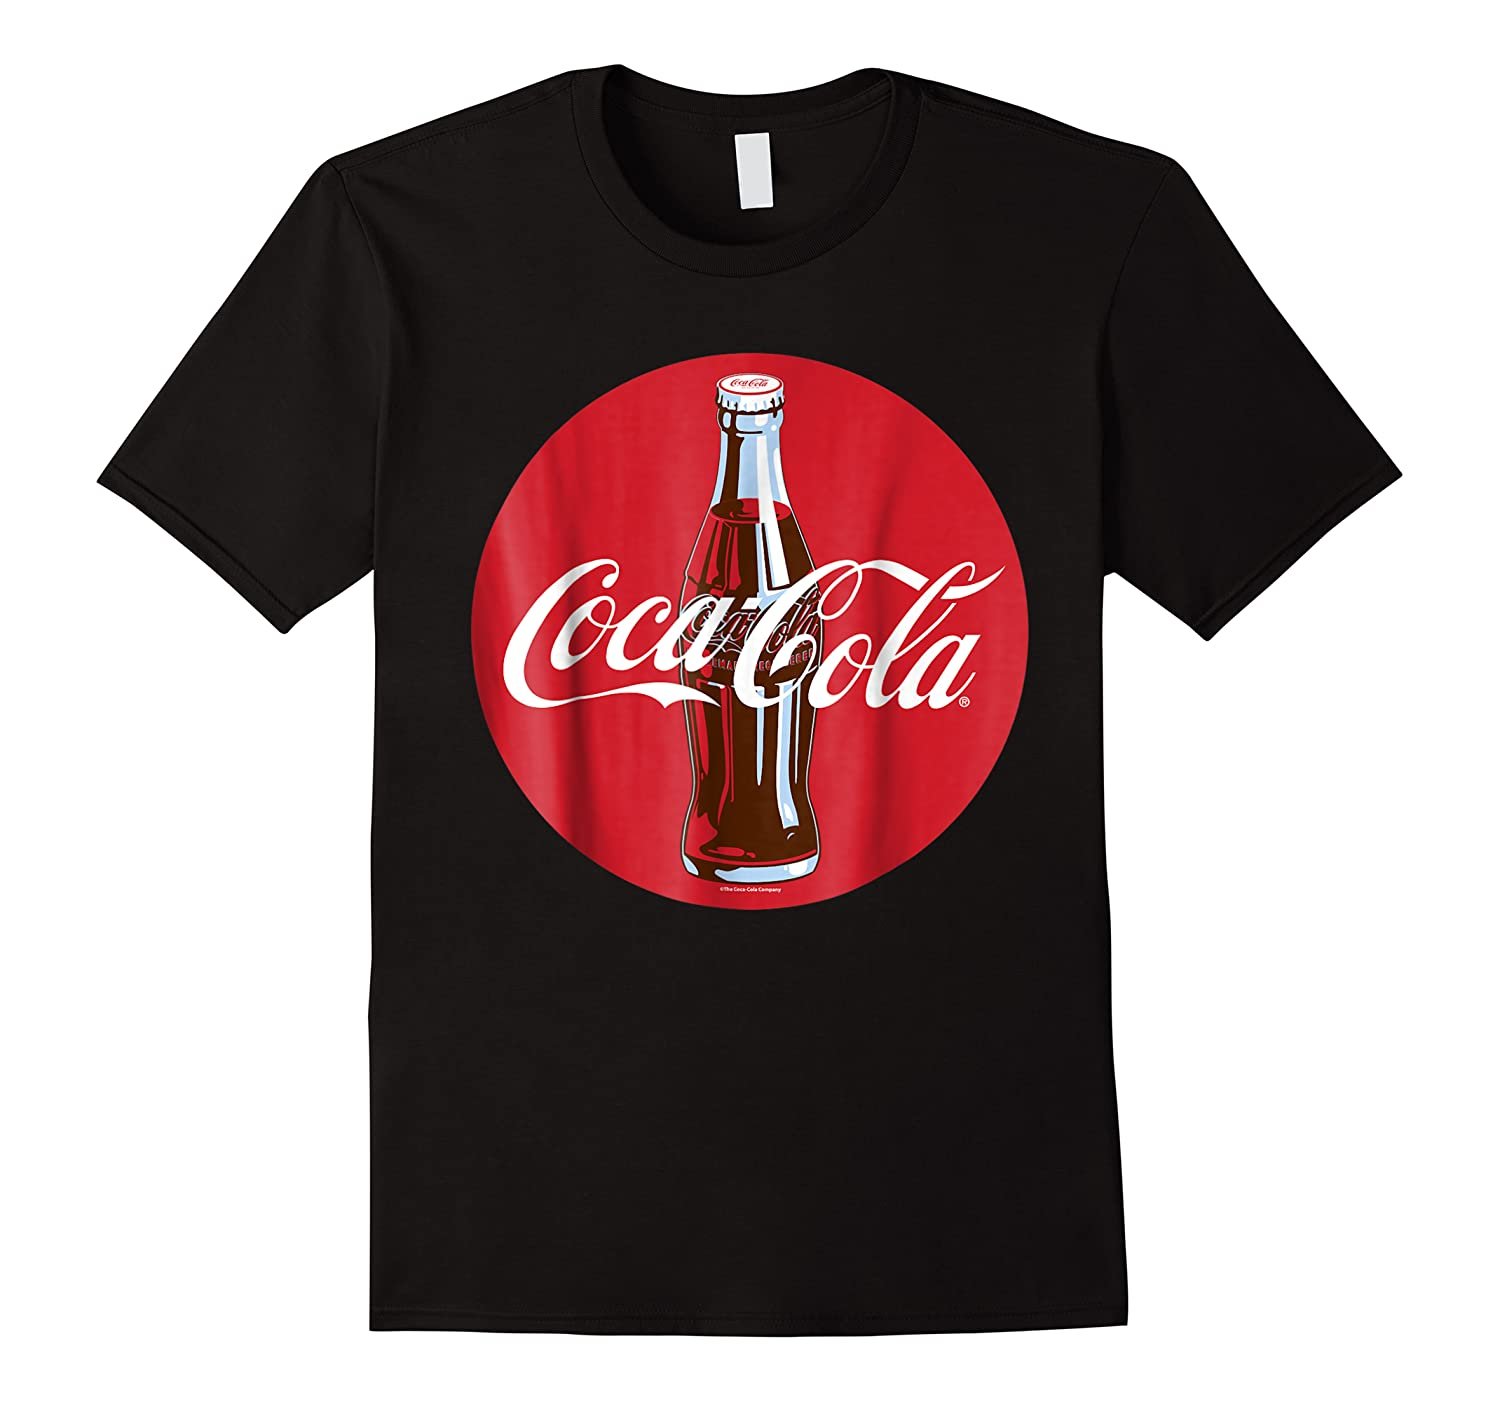 Coca Cola Glass Bottle Red Circle Logo Graphic Shirts